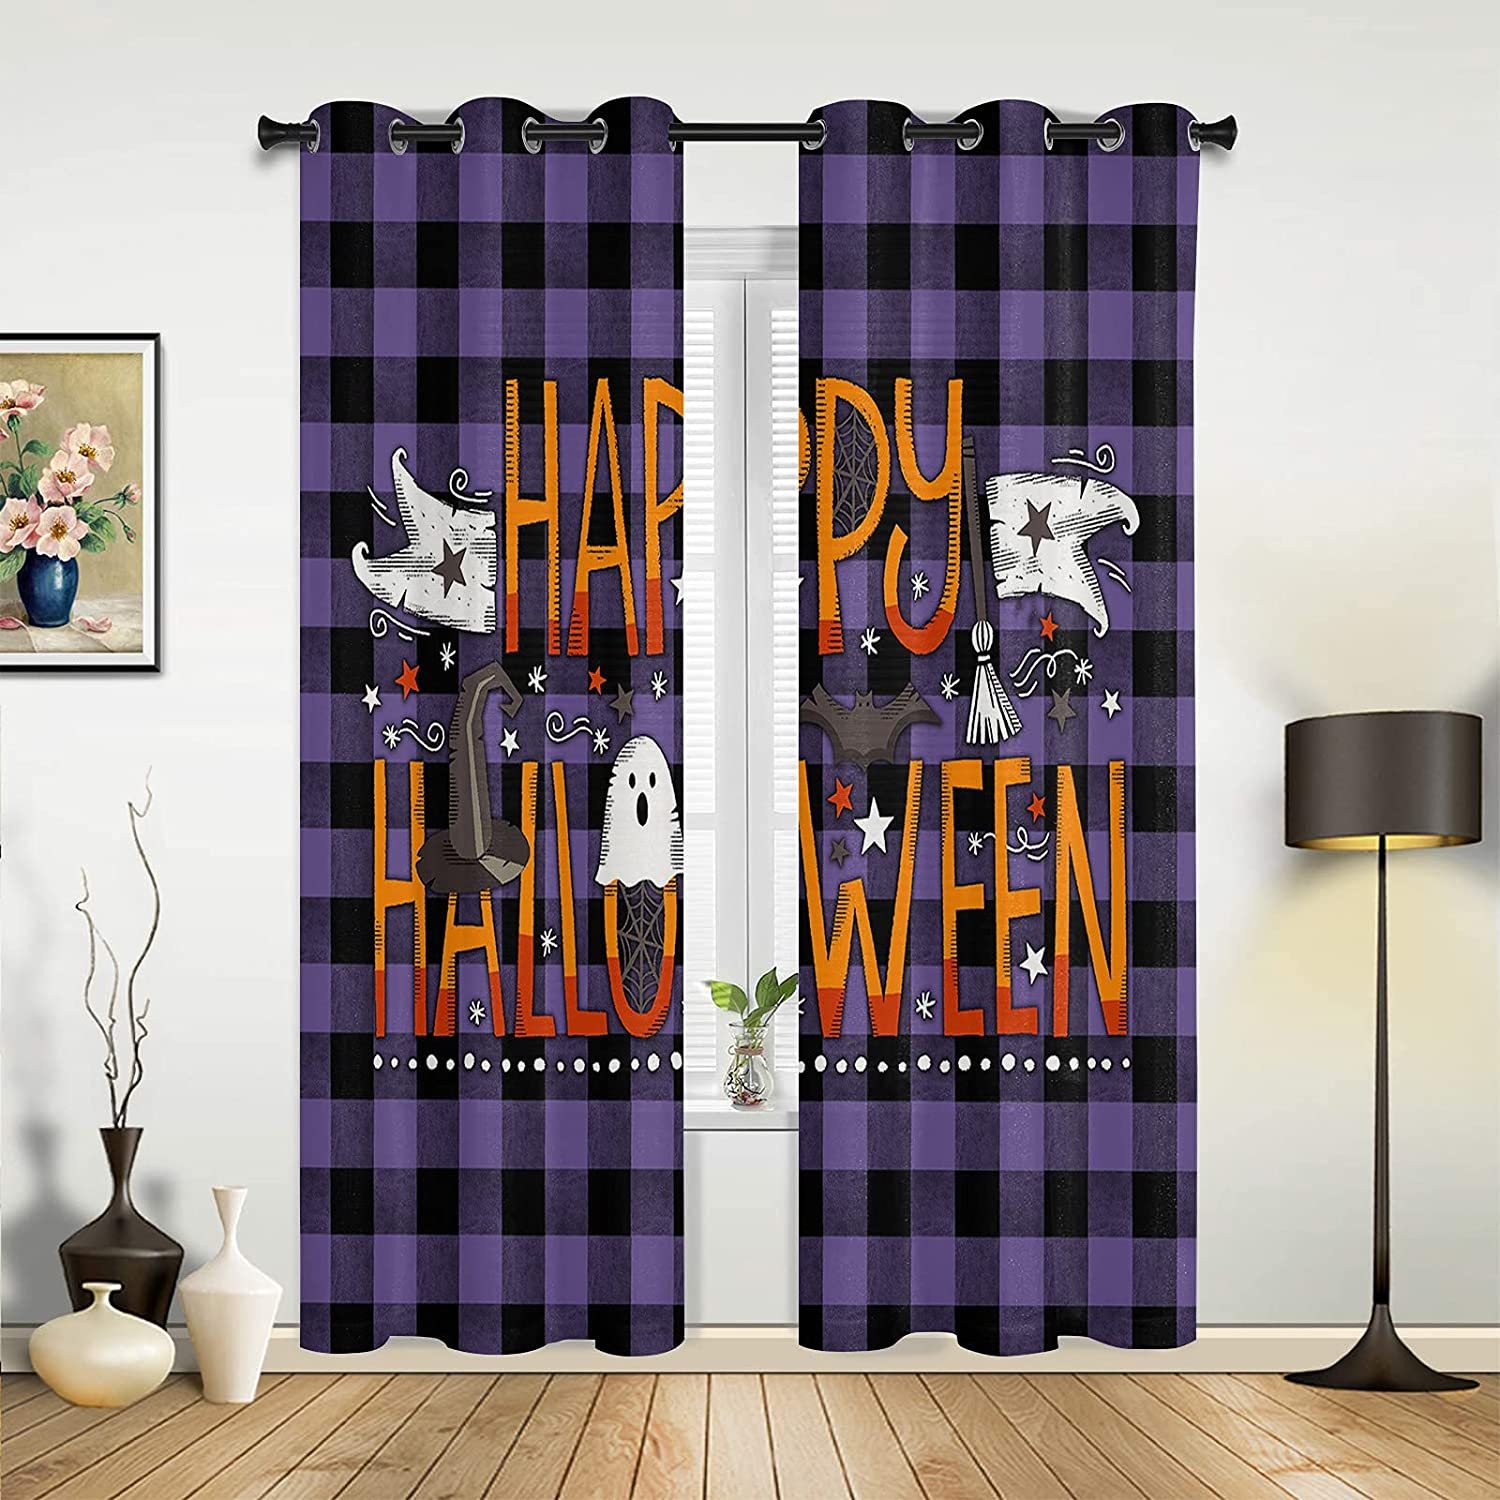 Window Super sale period limited Sheer Curtains for Bedroom Ranking TOP7 Living Hal Treat Room Trick or